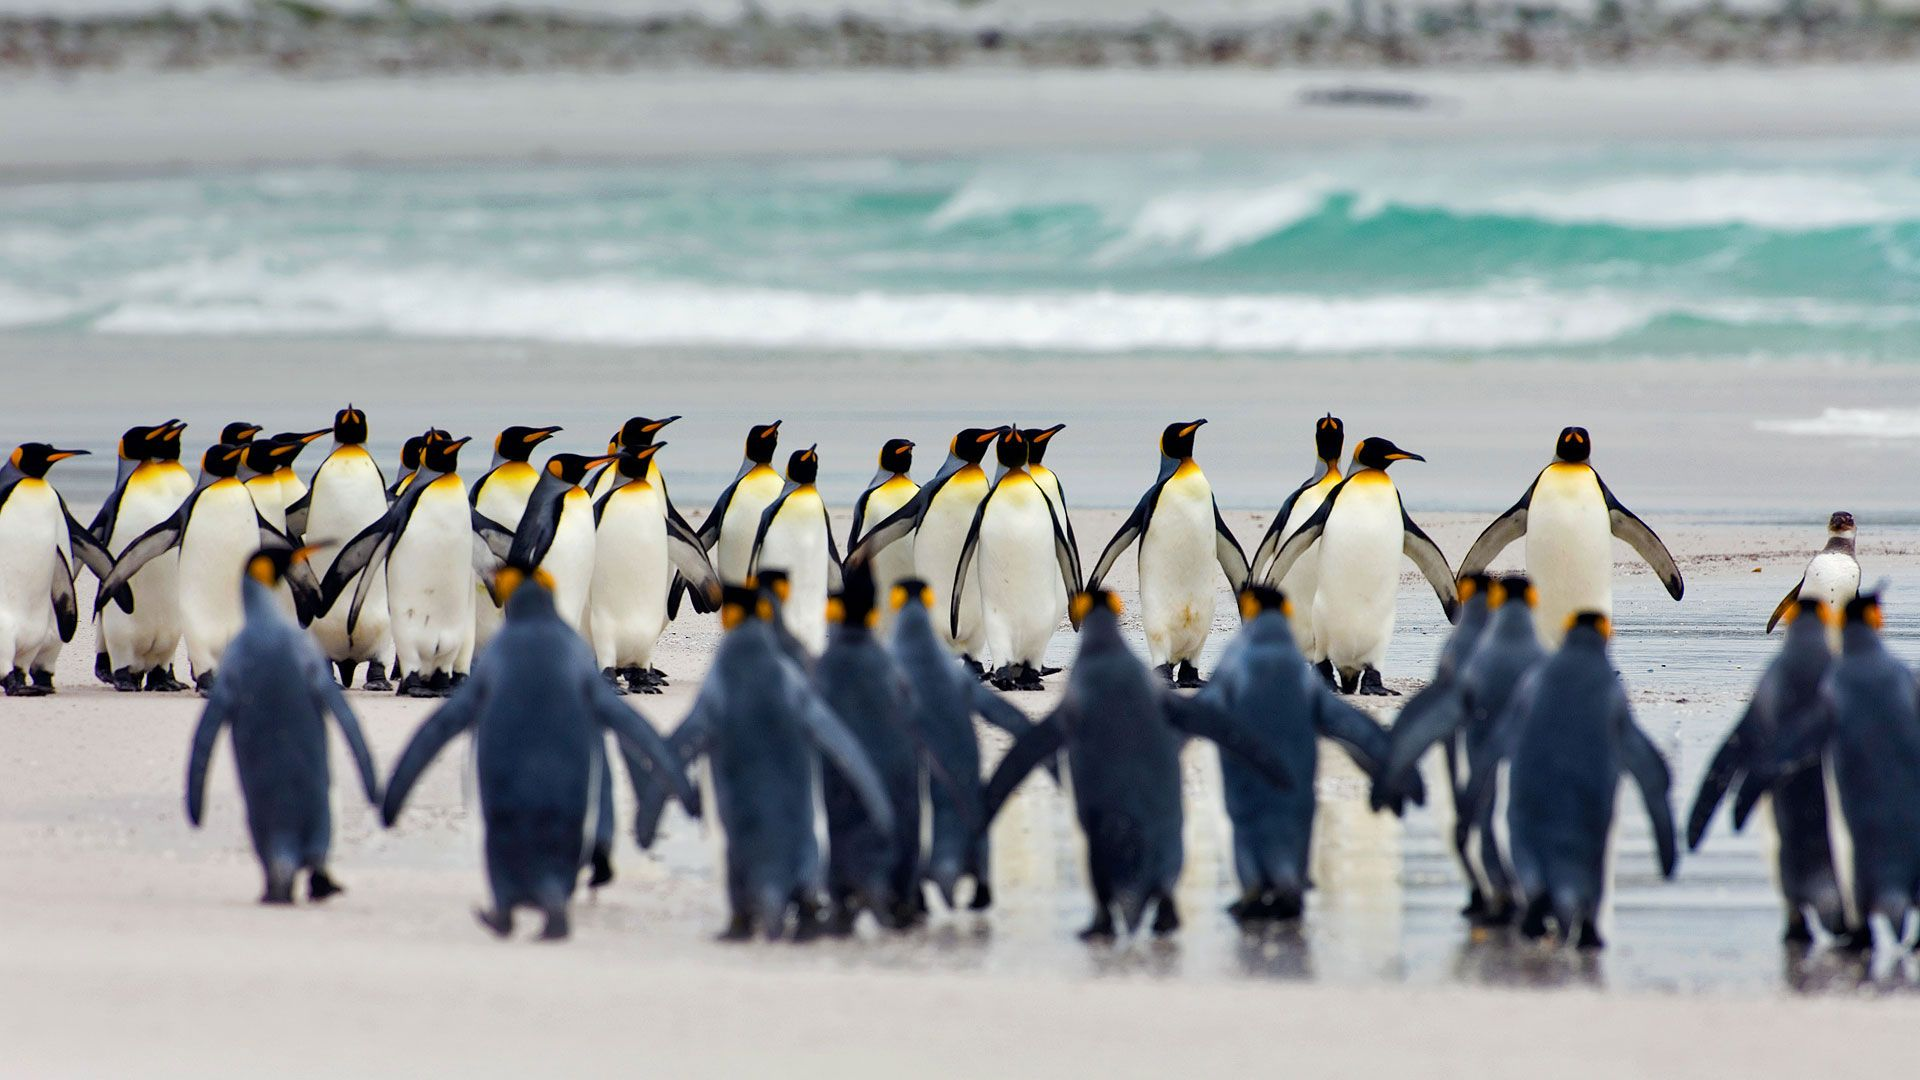 Extinction threatens to king penguins